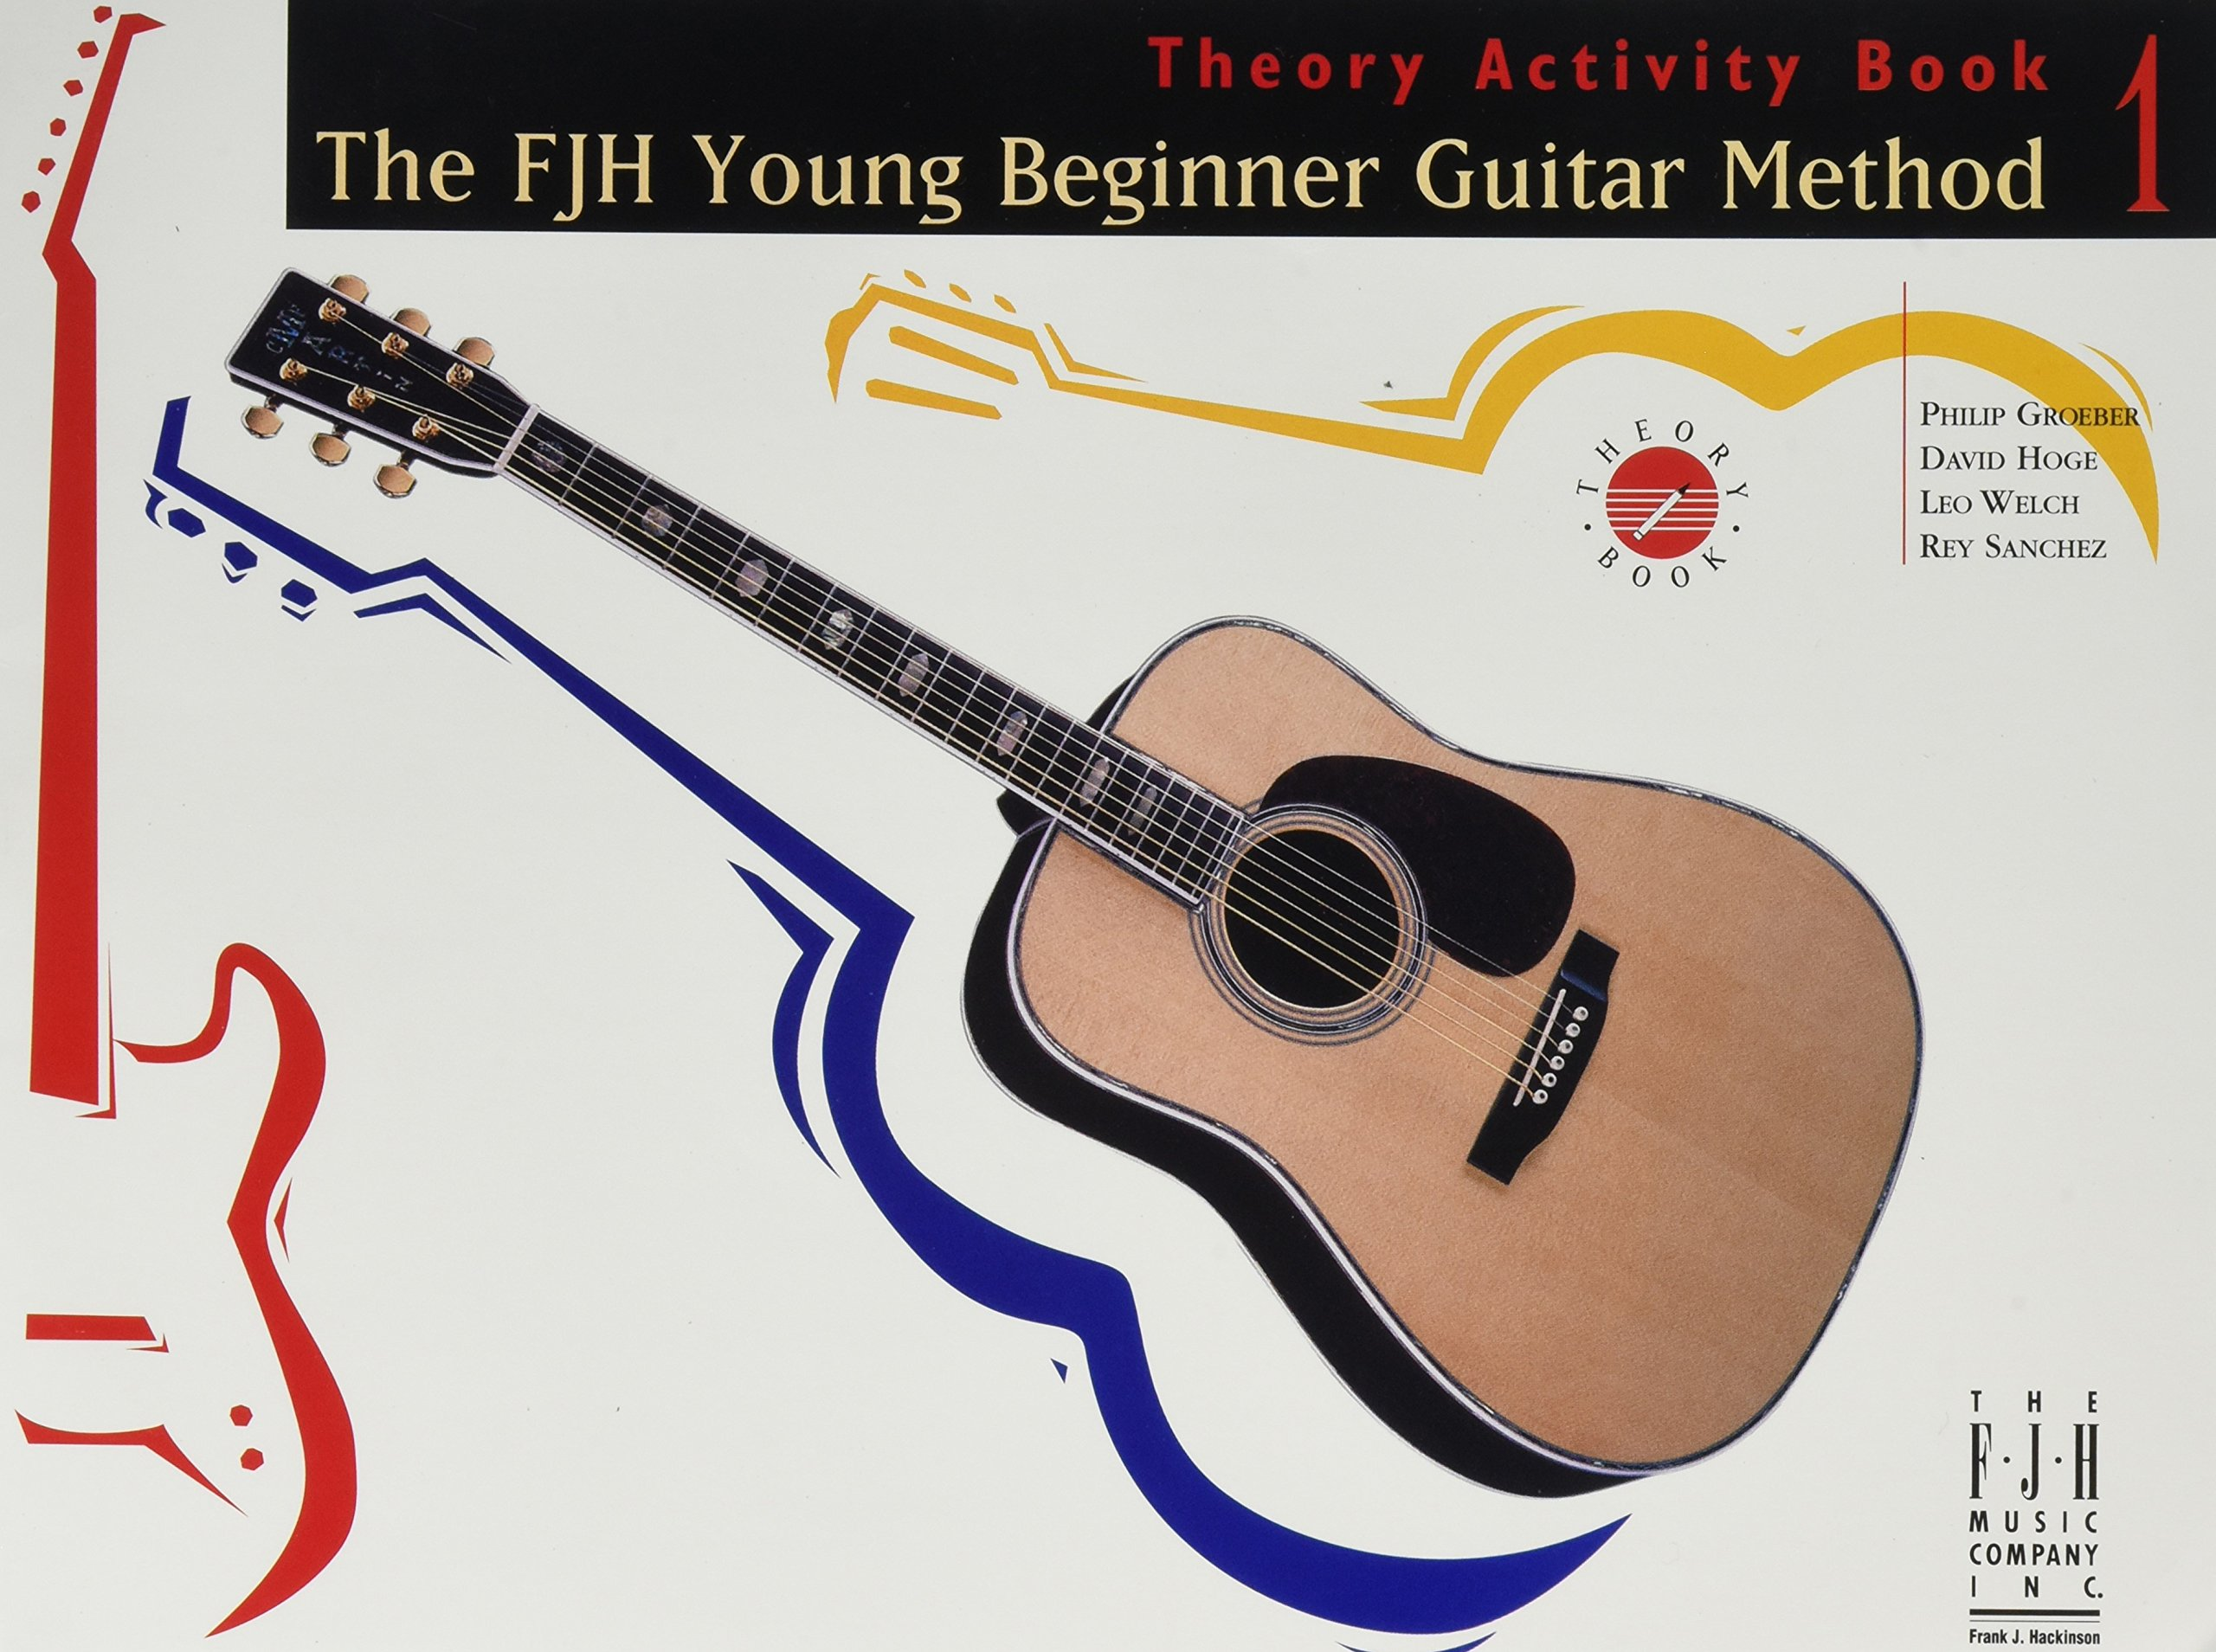 FJH Young Beginner Guitar Method, Theory Activity Book 1